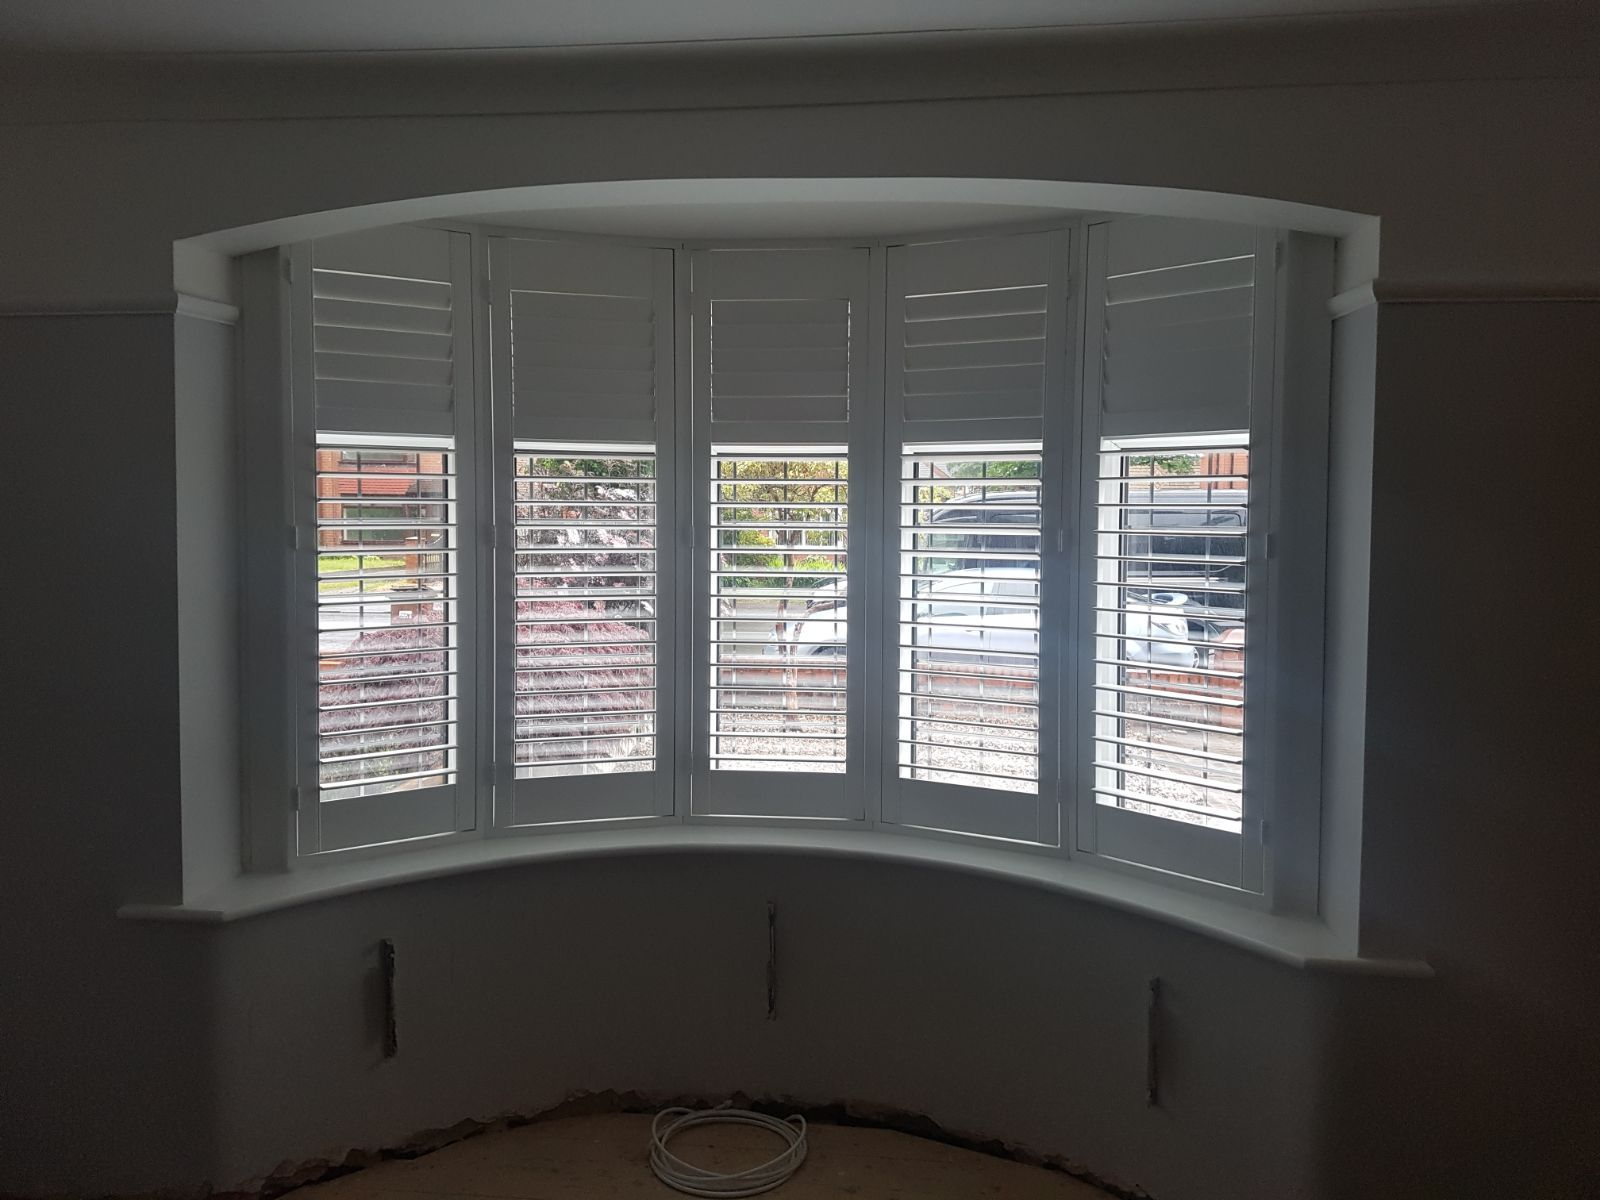 A 5 Panel Curved Bay Window Installation Even With The Top Slats